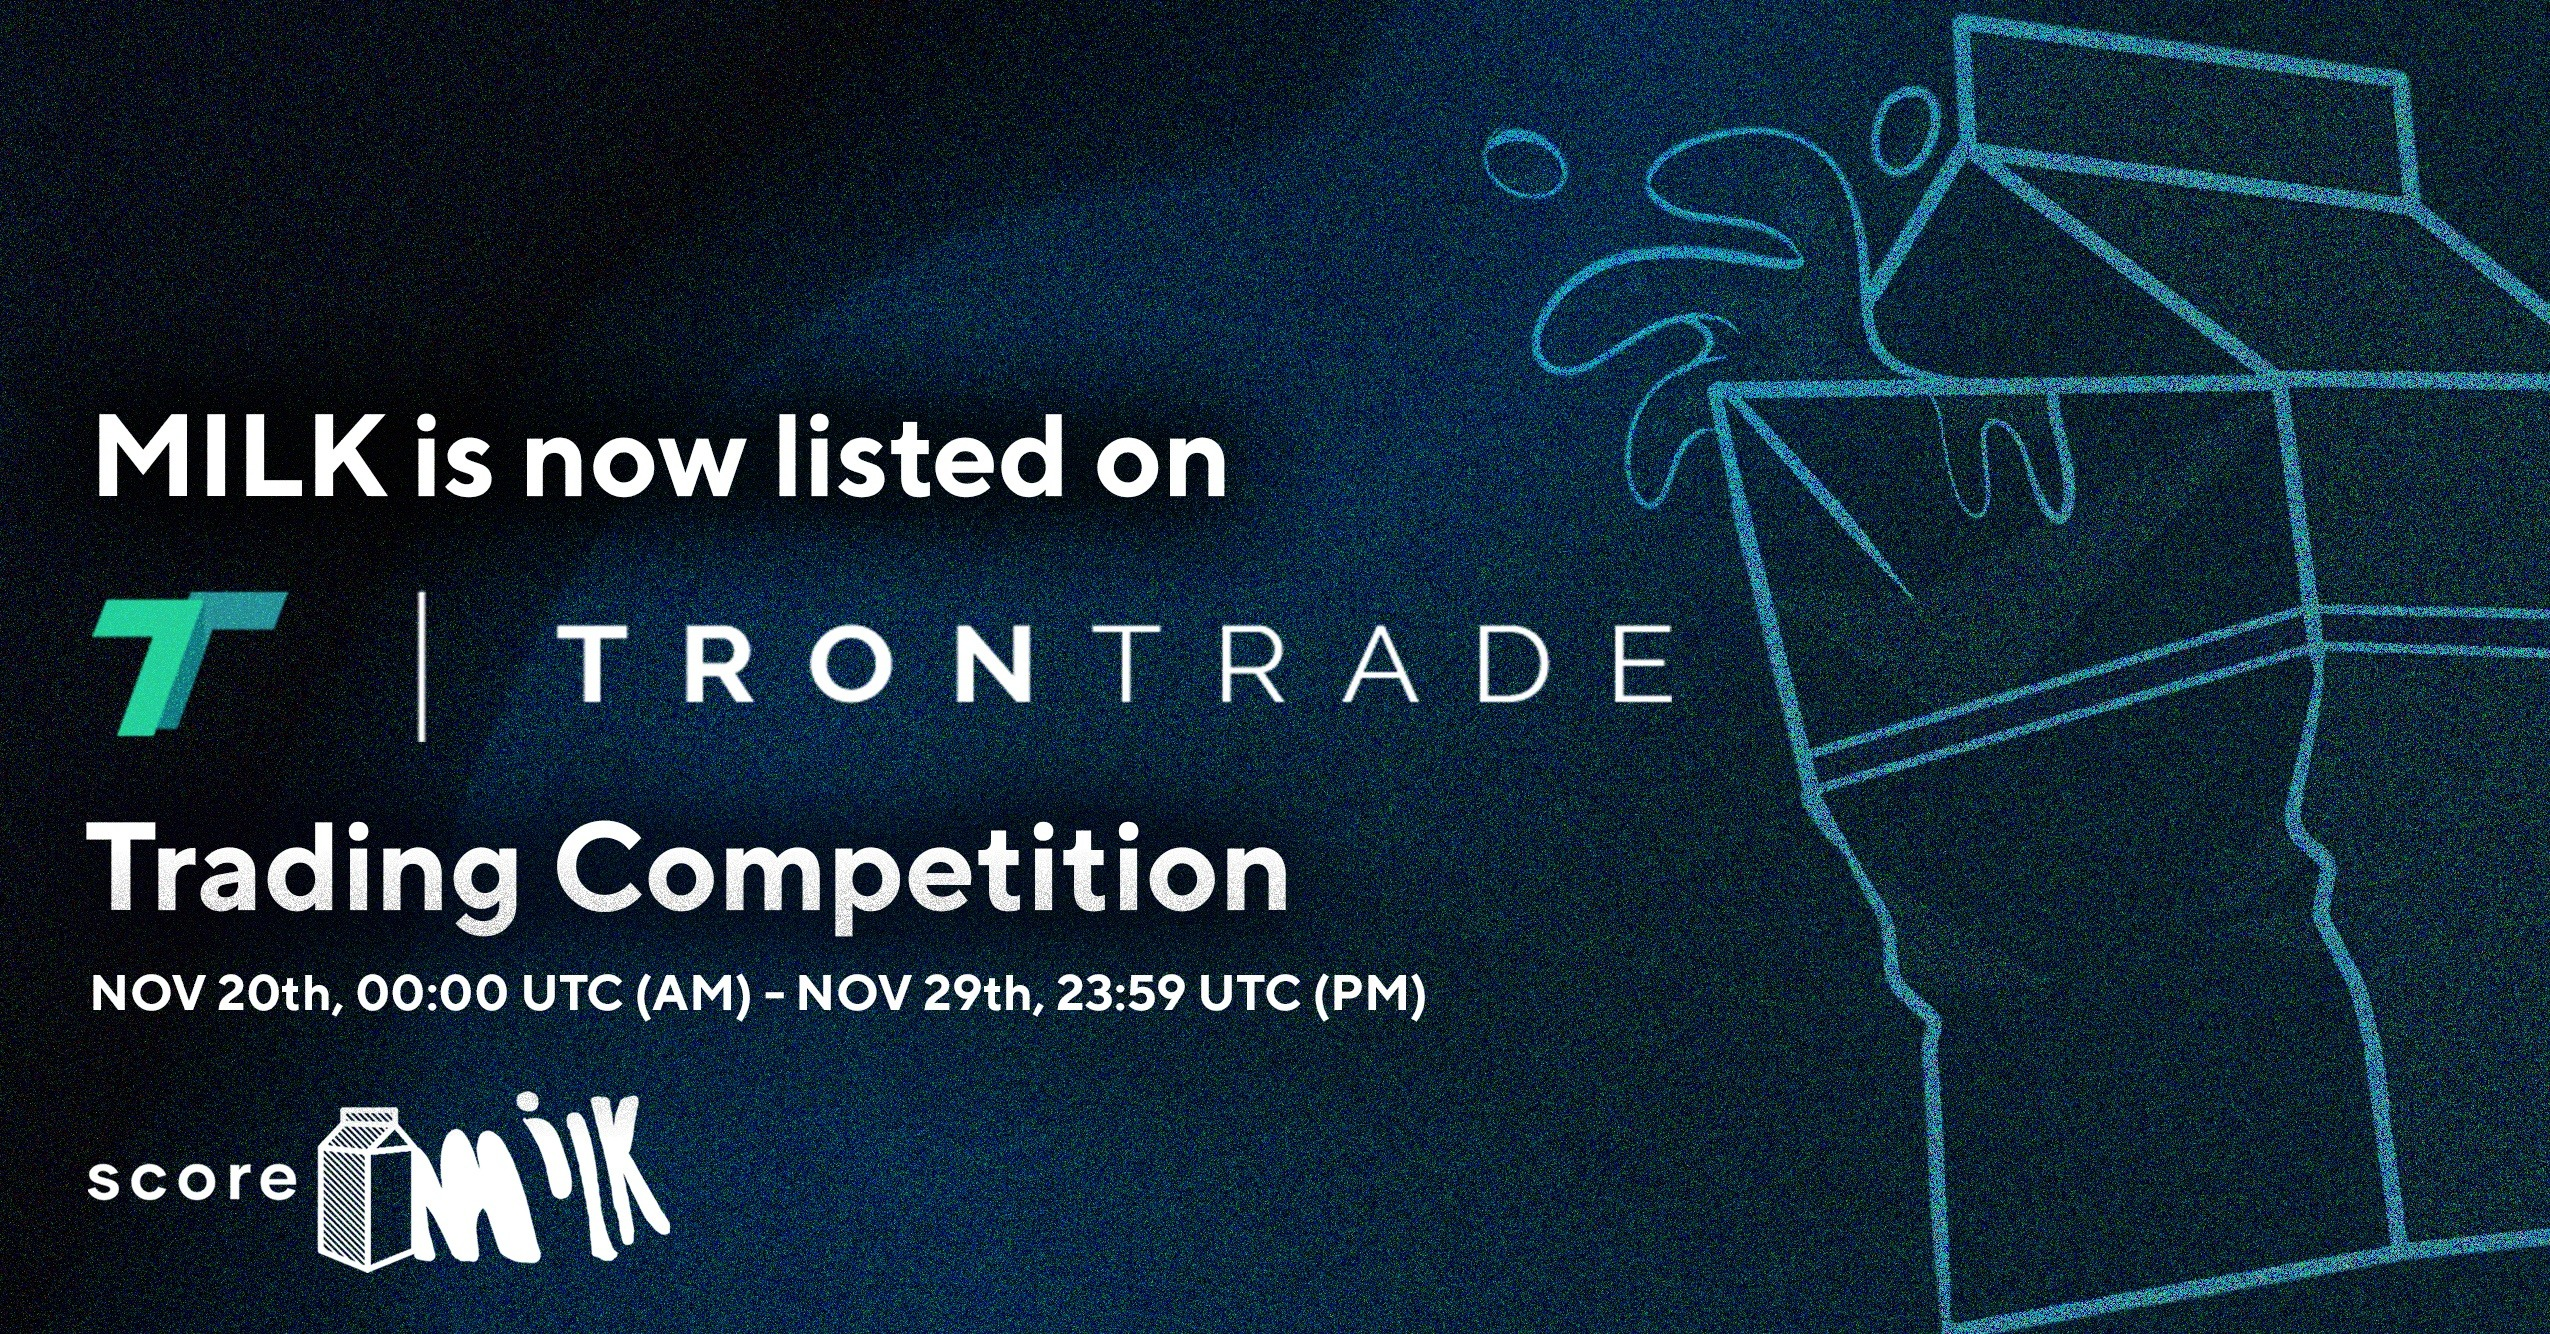 Score Milk is now listed on Tron Trade